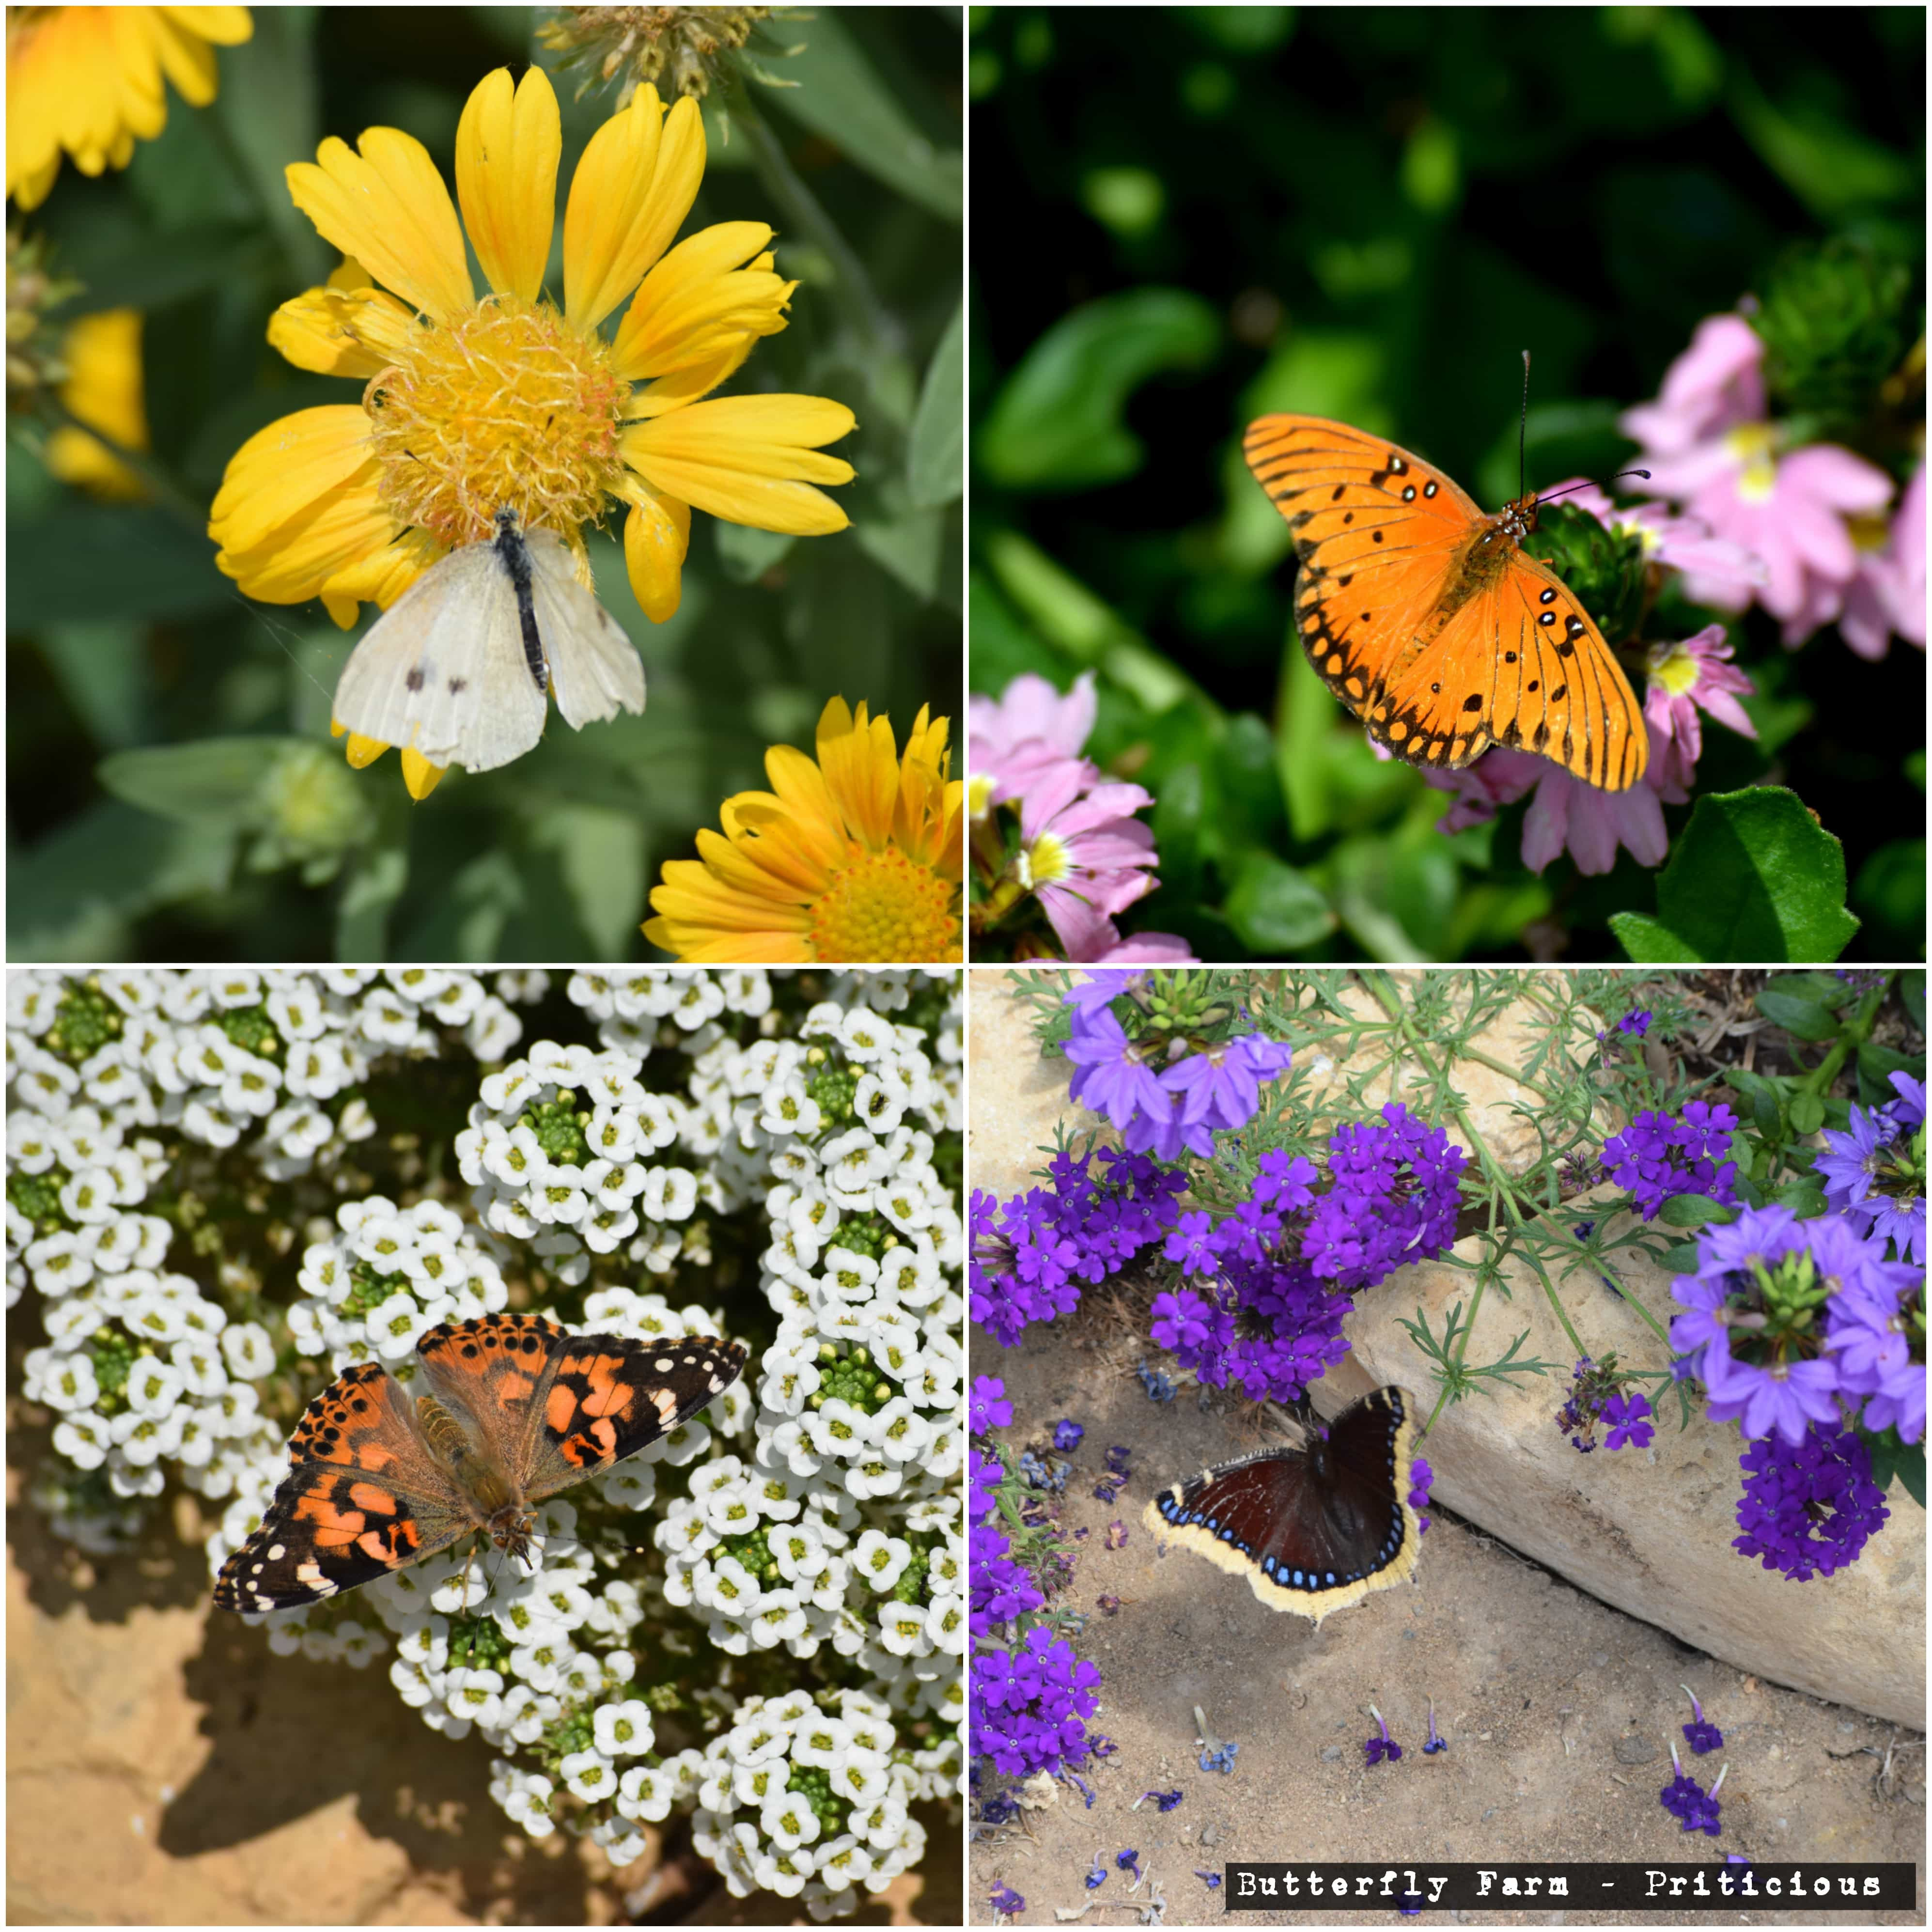 Priticious Blog For Gardening Craft And Hobbies